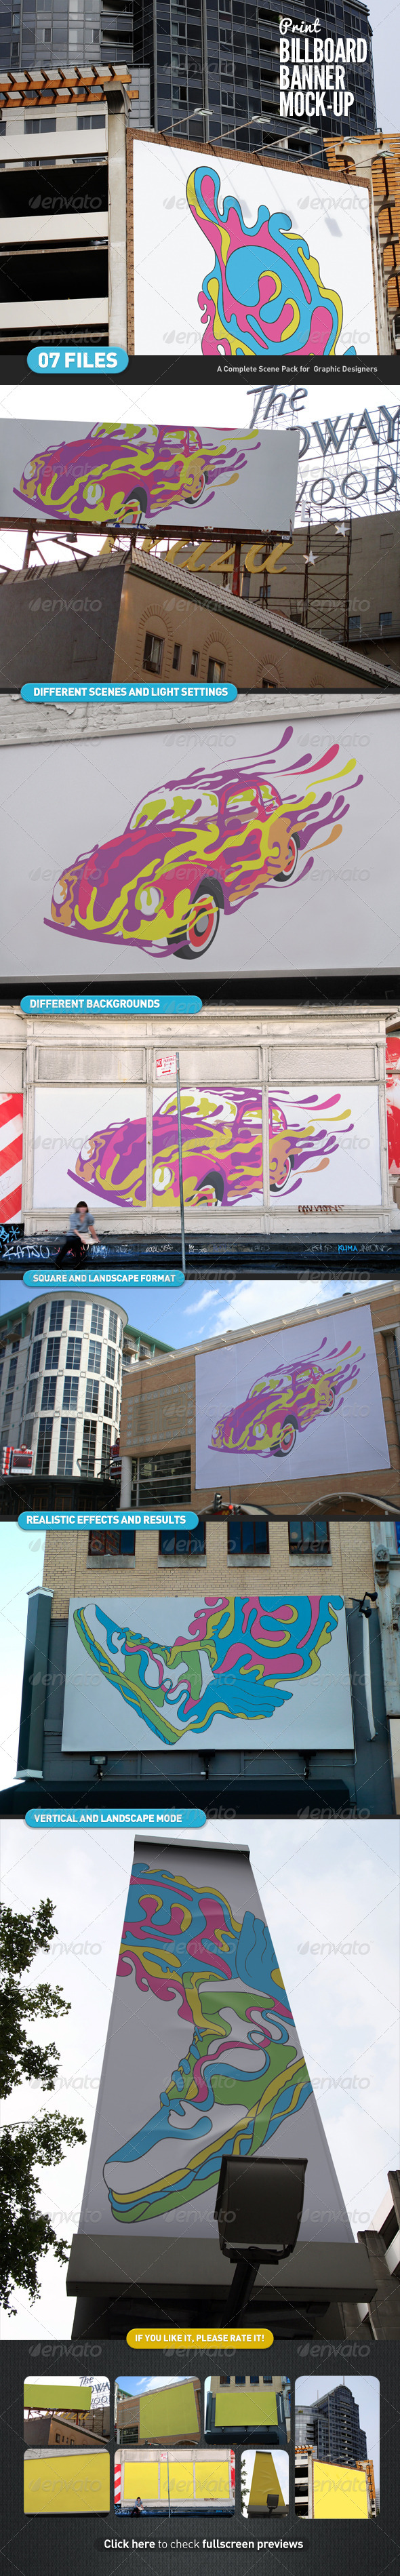 GraphicRiver Billboard Banner Mock-Up 4536490